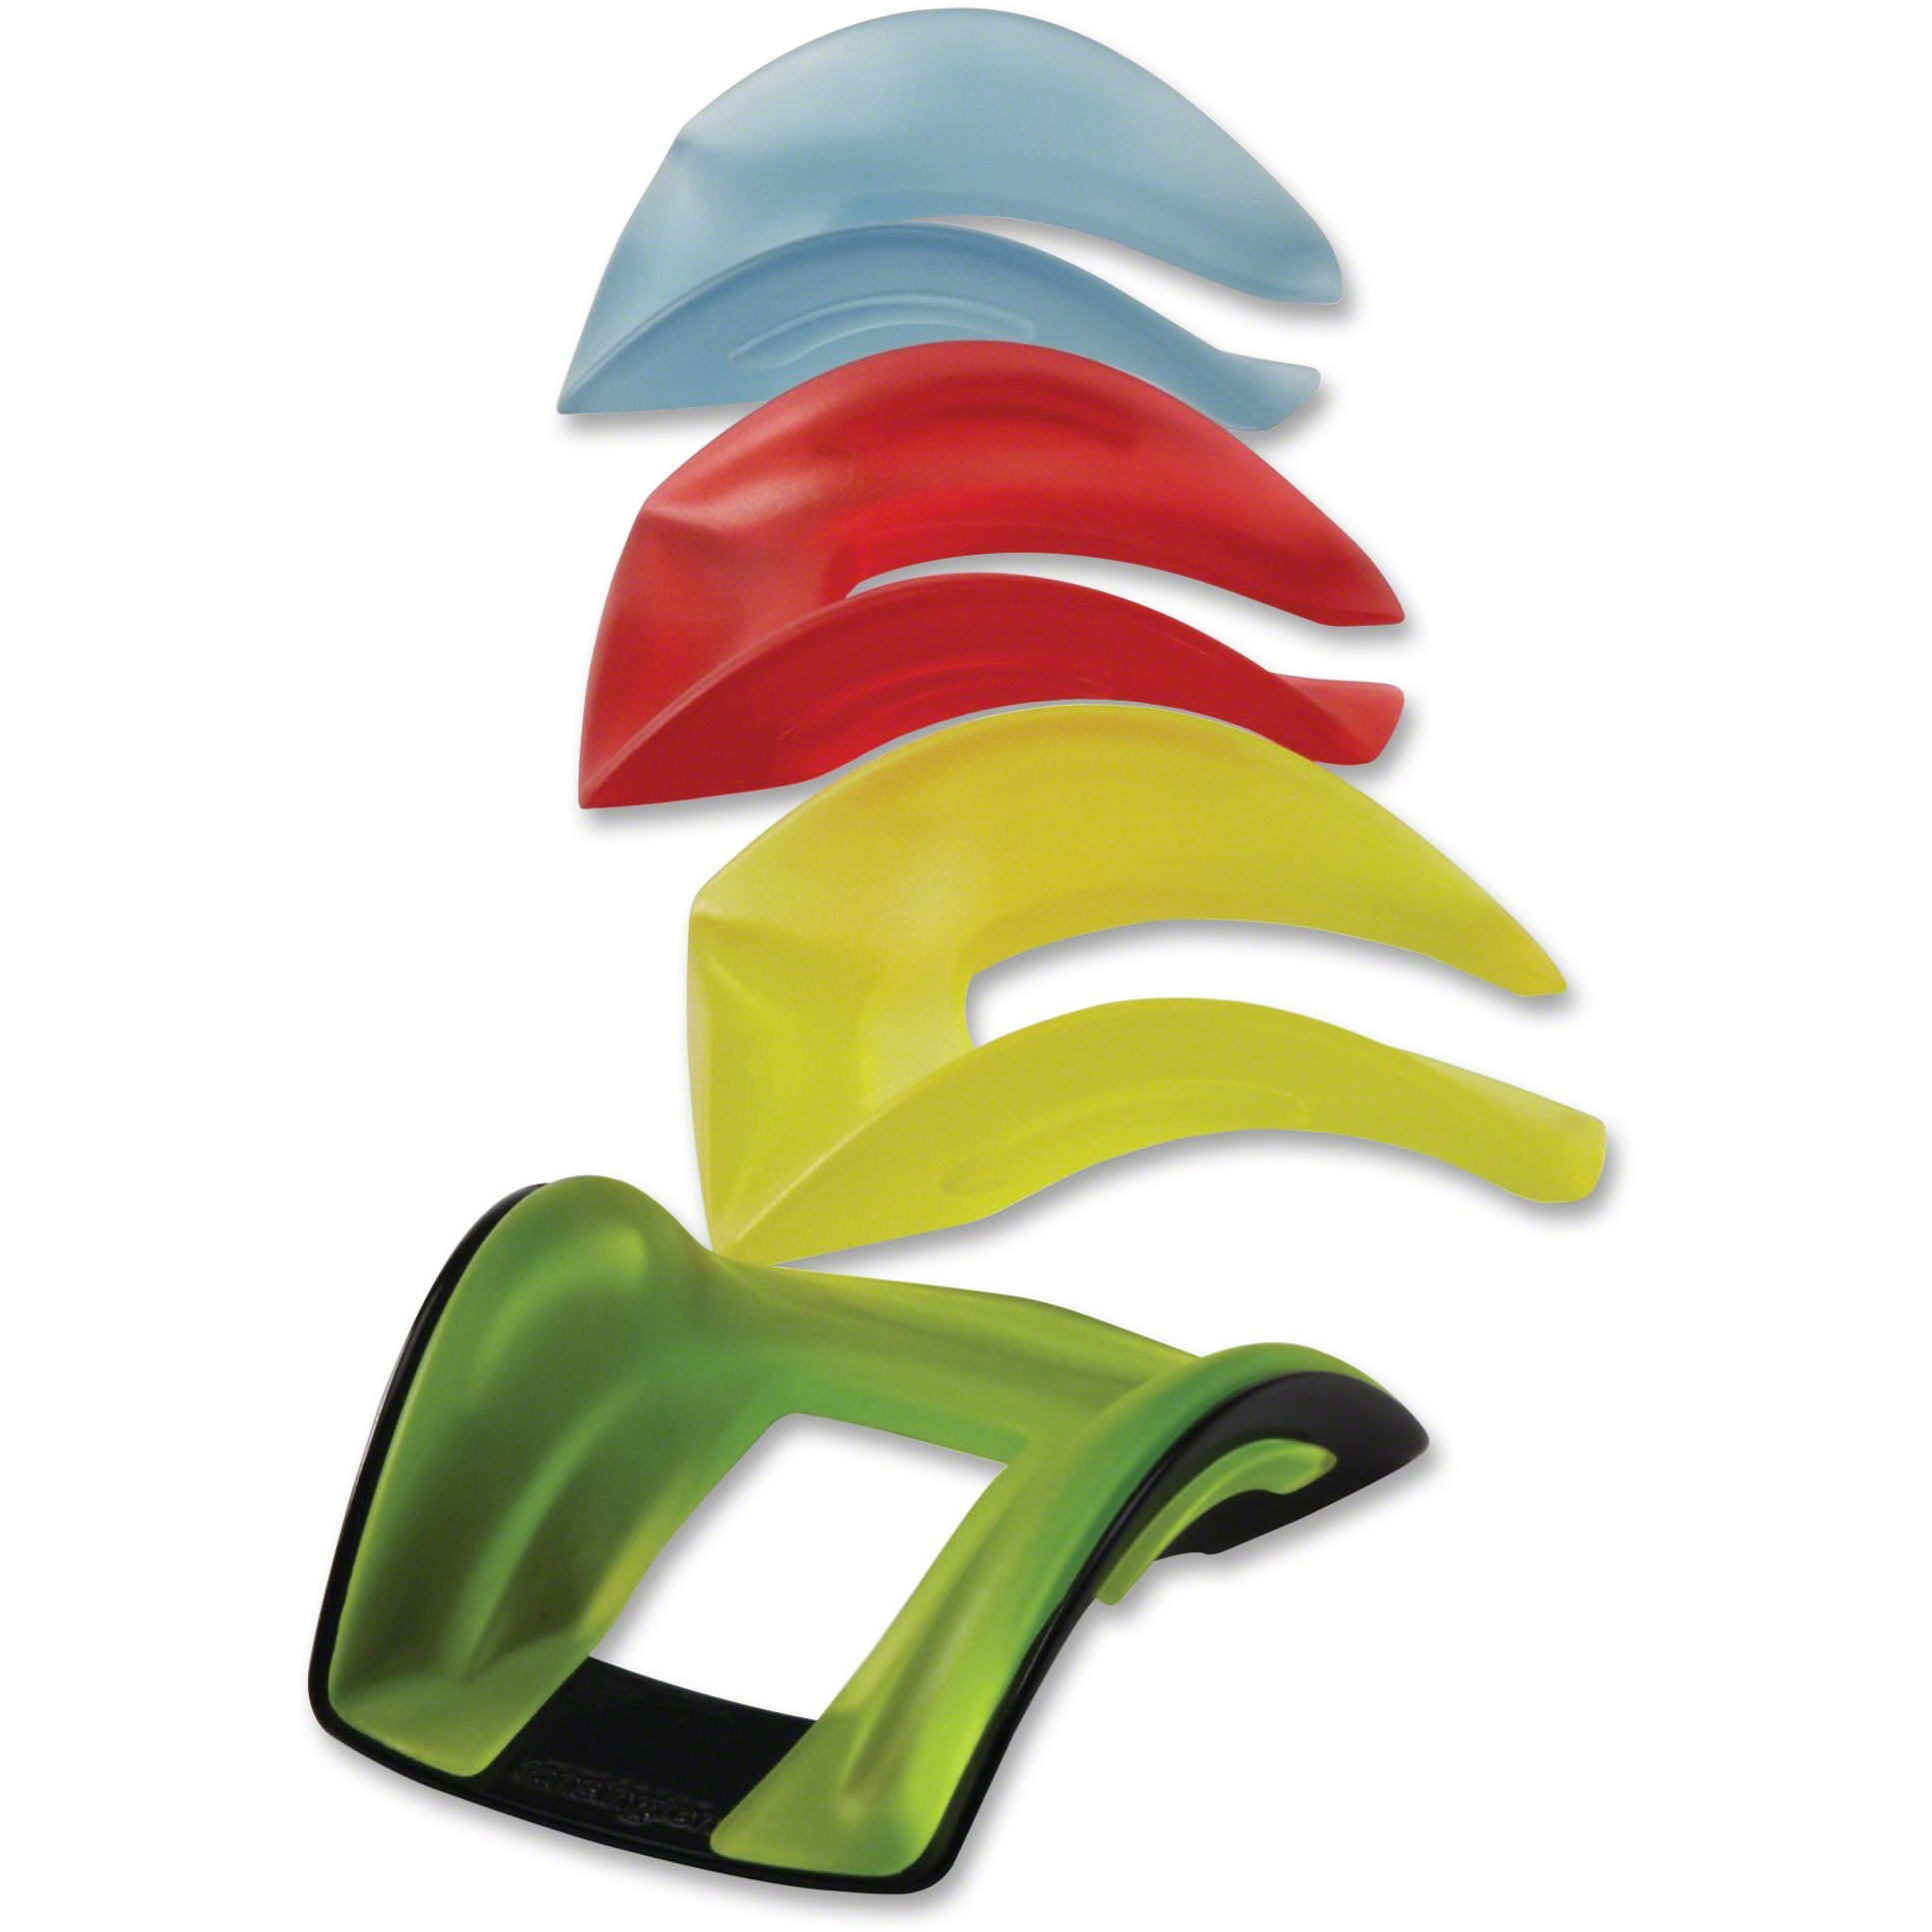 Kensington, KMW55787, Comfort Wrist Rest, 1, Black,Blue,Red,Green,Yellow